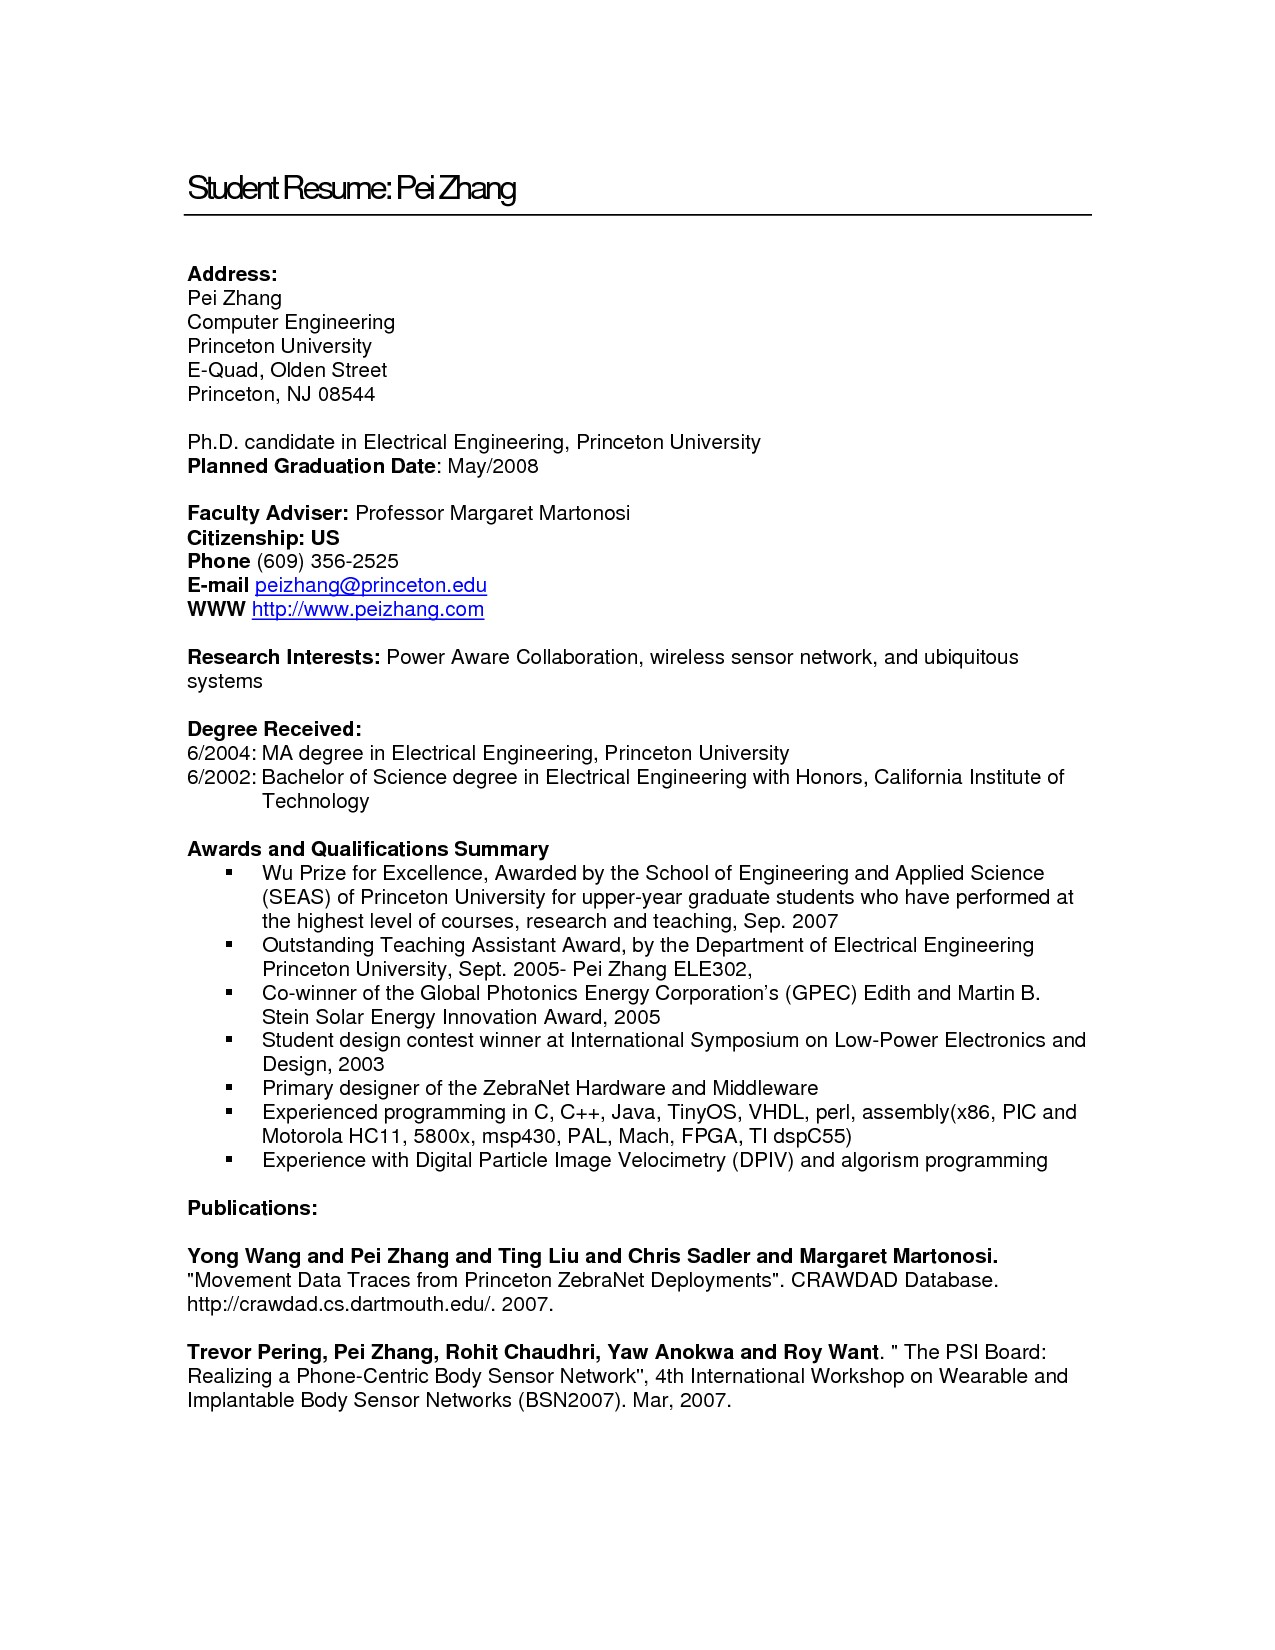 Resume Samples for Computer Engineering Students Resume for Computer Engineering Students Resume Ideas